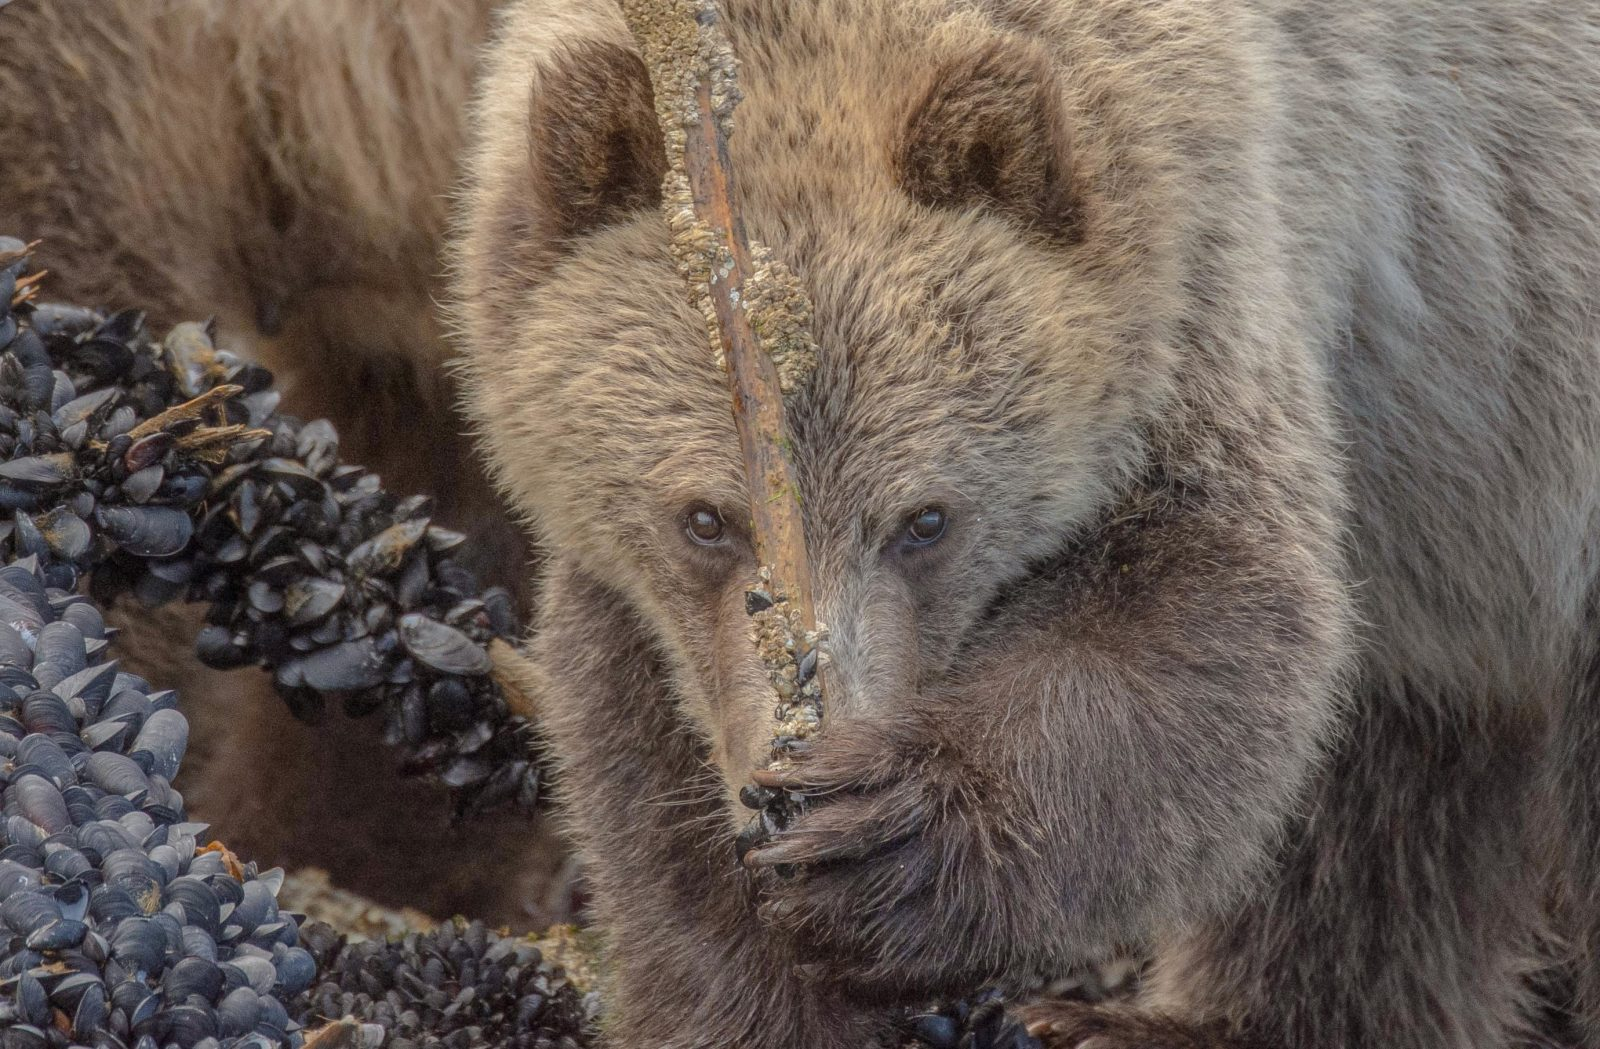 Grizzly Bears love Mussels.